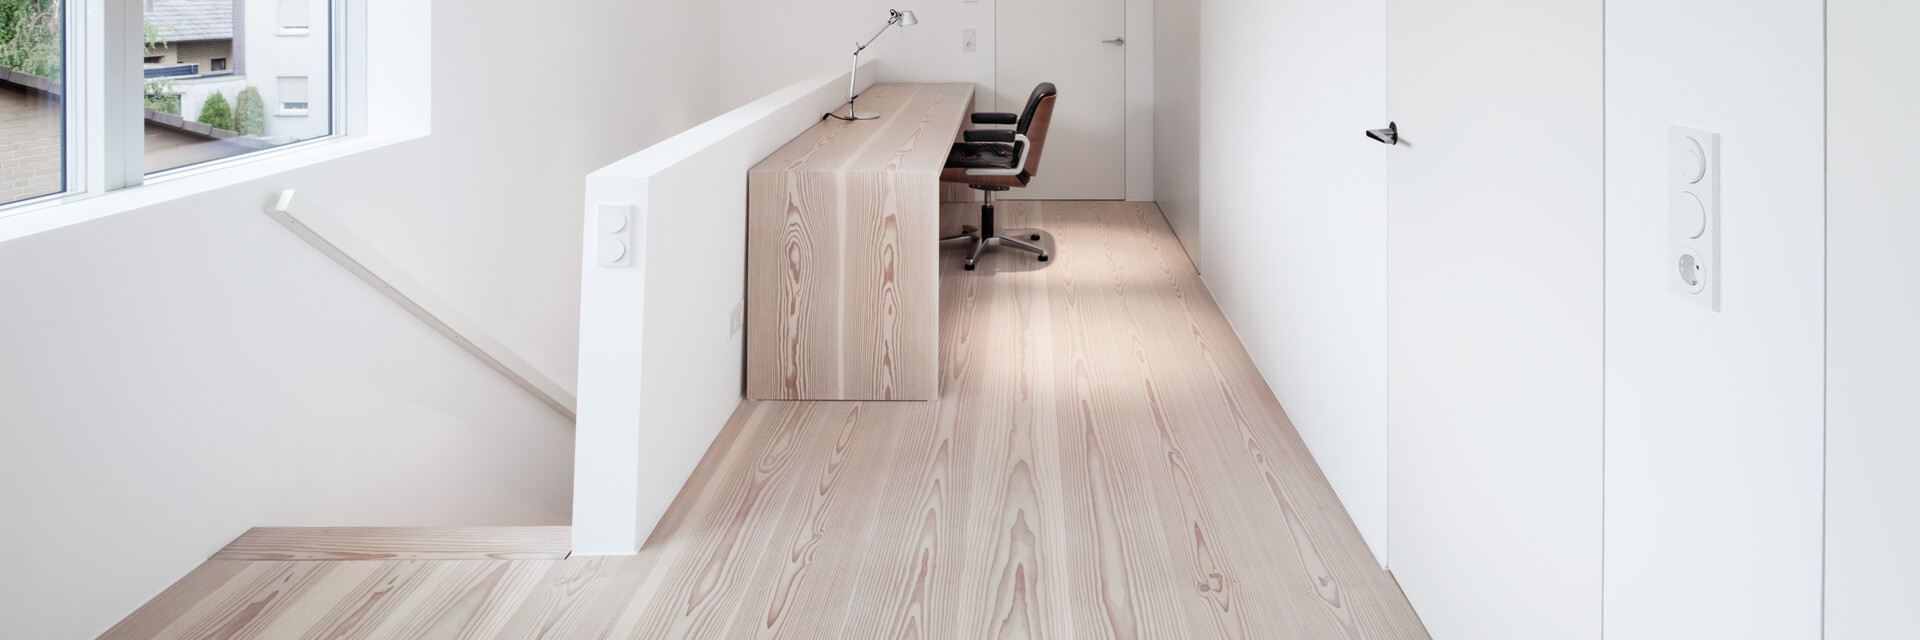 Aesthetic wooden board floors grown and made in Germany.